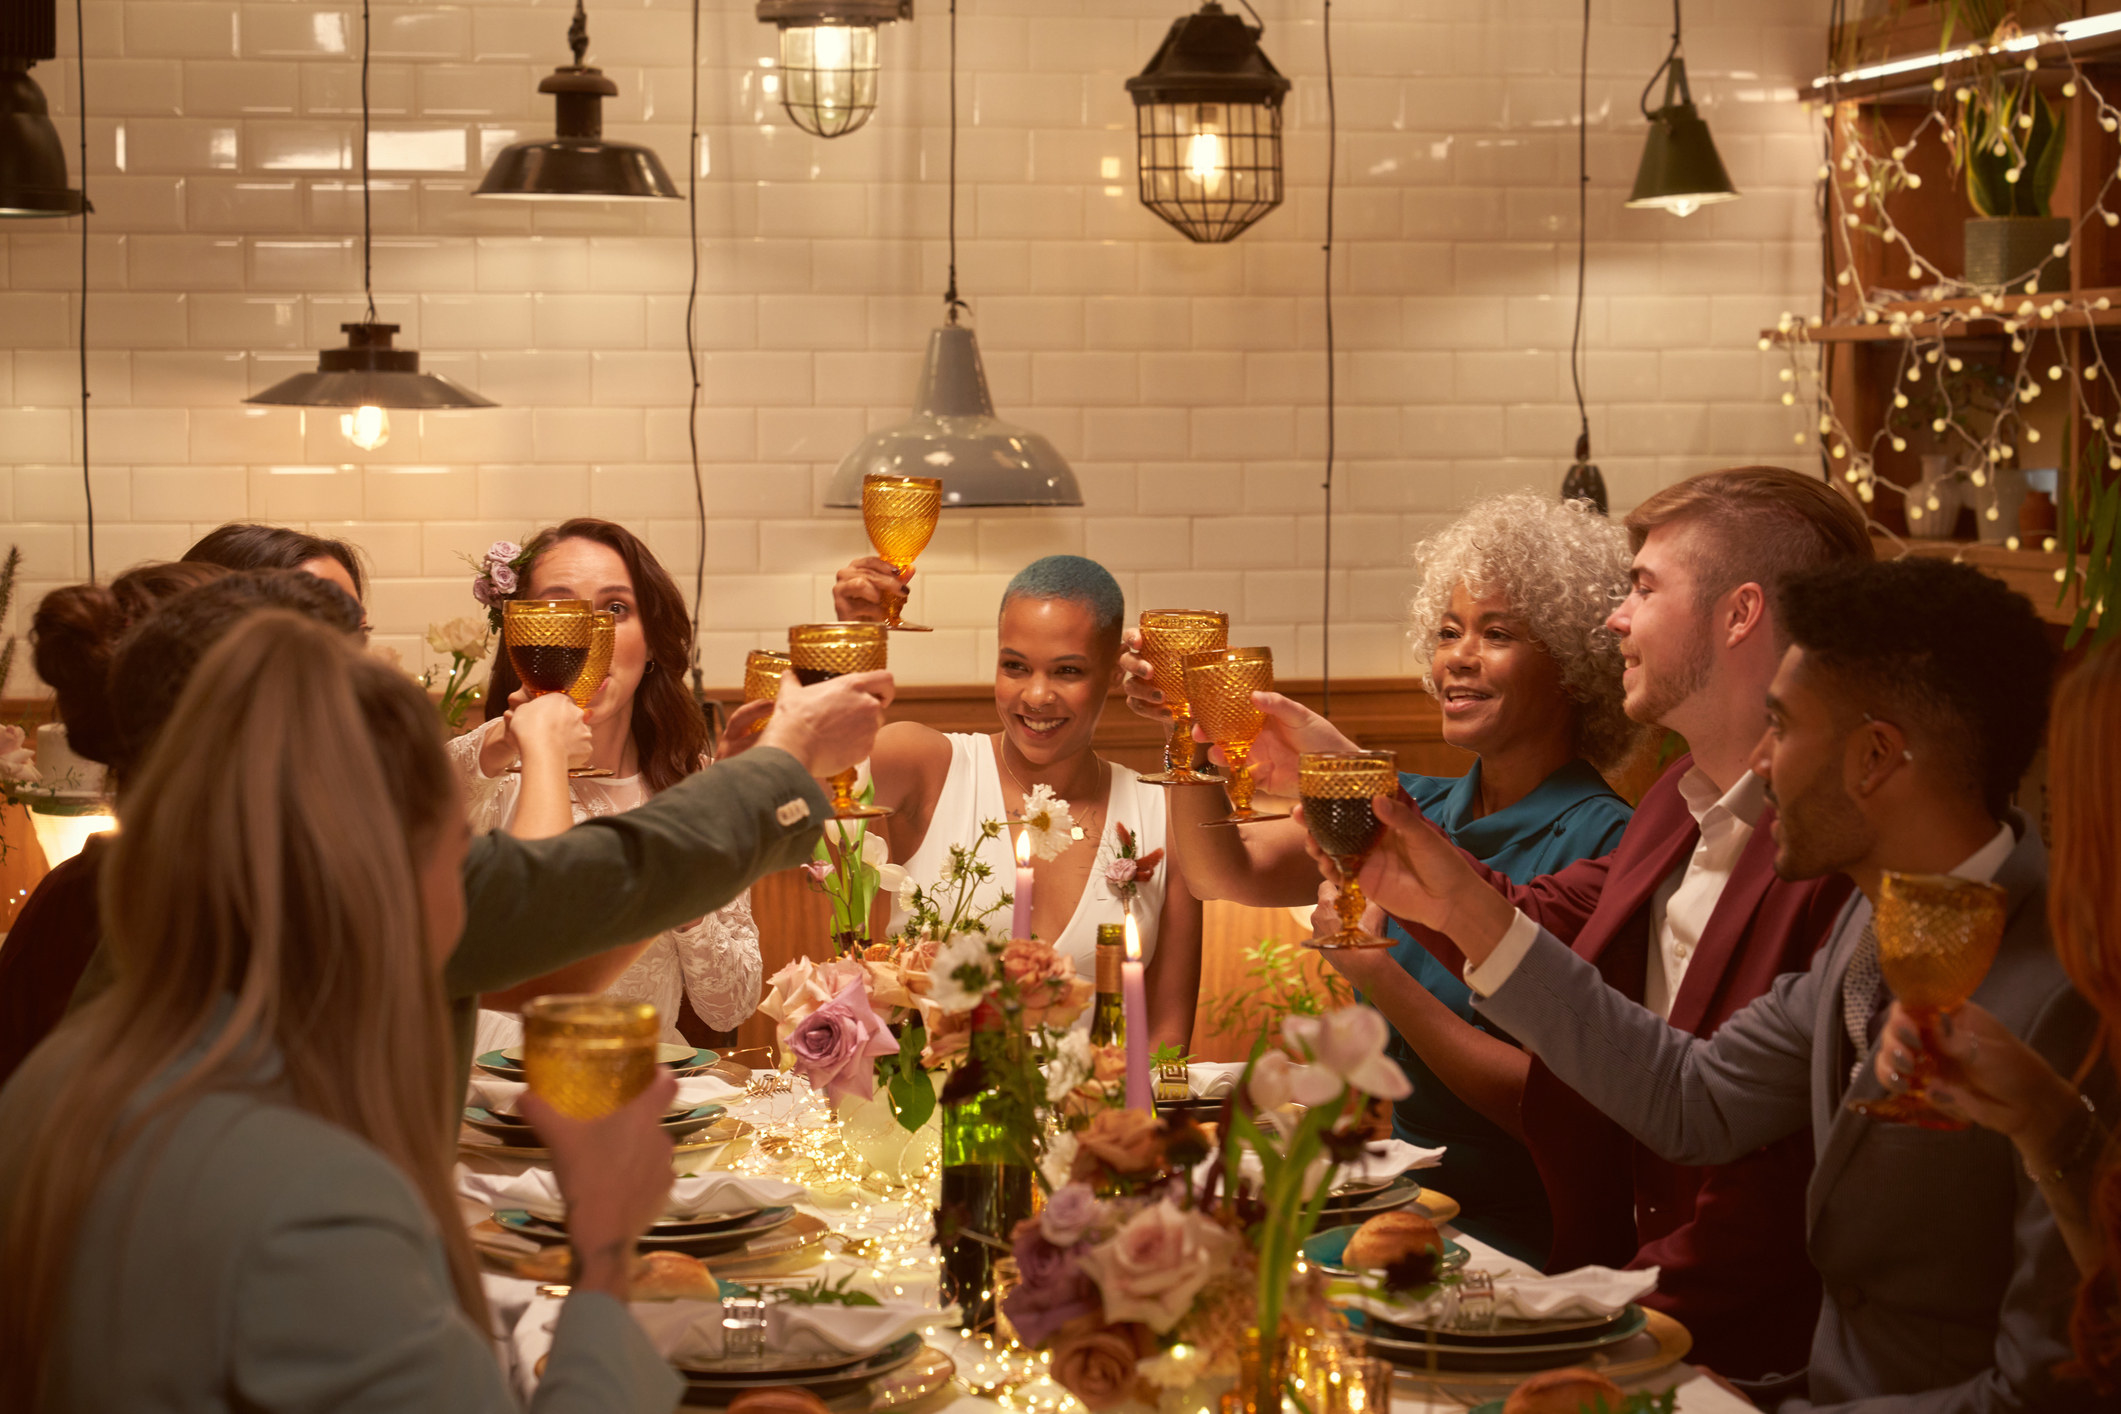 A group of people making a toast at the dinner table